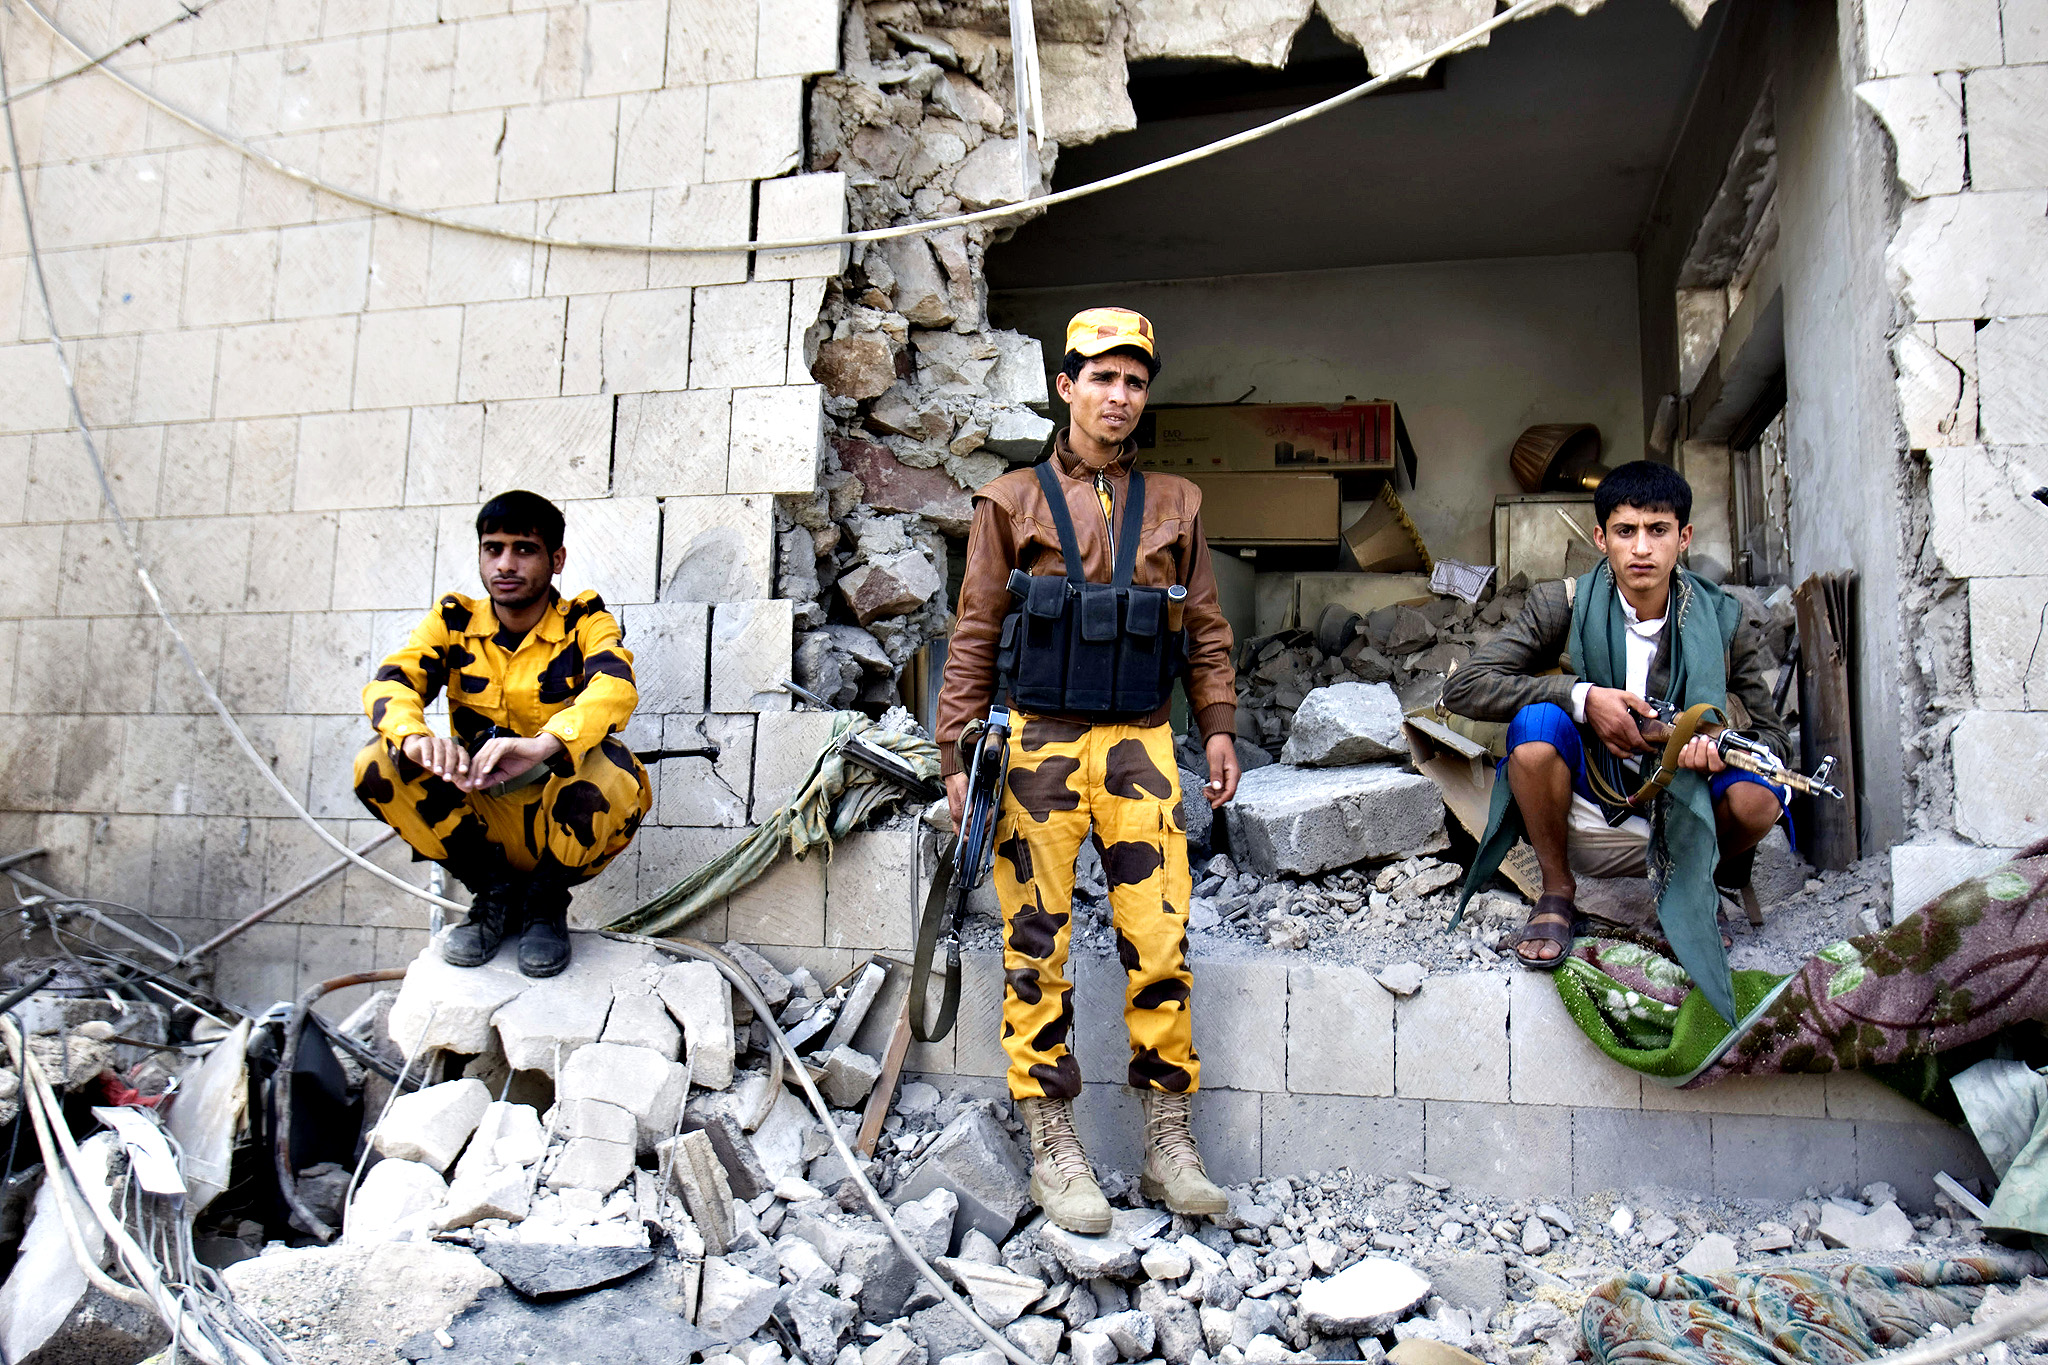 Yemeni police gather at the damaged residence of the Iranian ambassador after a car bomb attack in Sanaa, Yemen, Wednesday, Dec. 3, 2014. A massive car bomb exploded Wednesday morning in the Yemeni capital, Sanaa, apparently targeting the home of the Iranian ambassador, Yemeni security officials said.